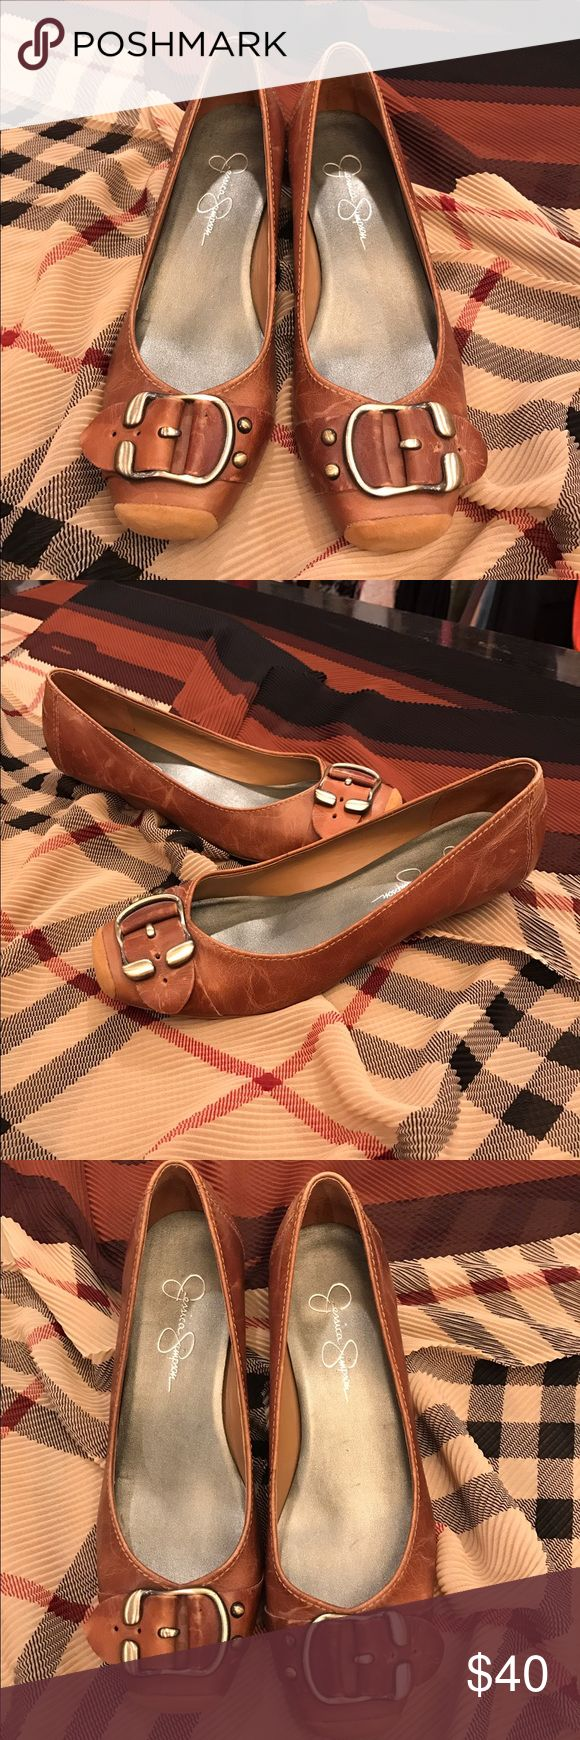 Jessica Simpson flats These Jessica Simpson size 7.5 flats were purchased and never worn. Going through my closet, I'm beginning to think I have issues. 🙃👠👜 Jessica Simpson Shoes Heels